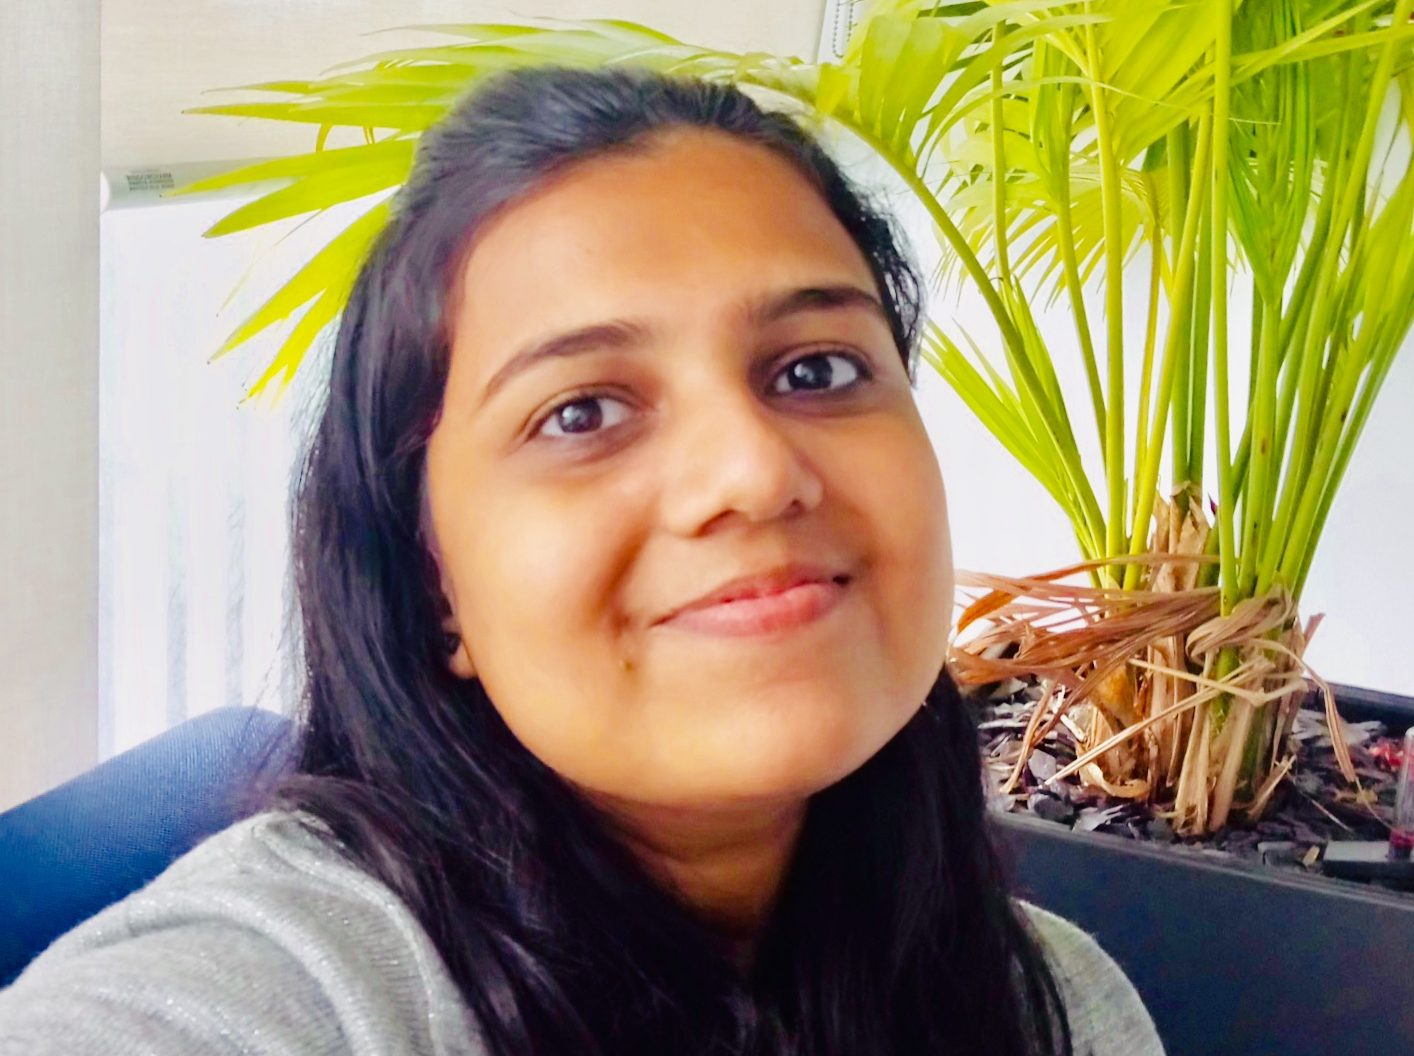 Manasi Mulay who is our 6th Scholar to be published by Springer in their SDG encyclopaedia.